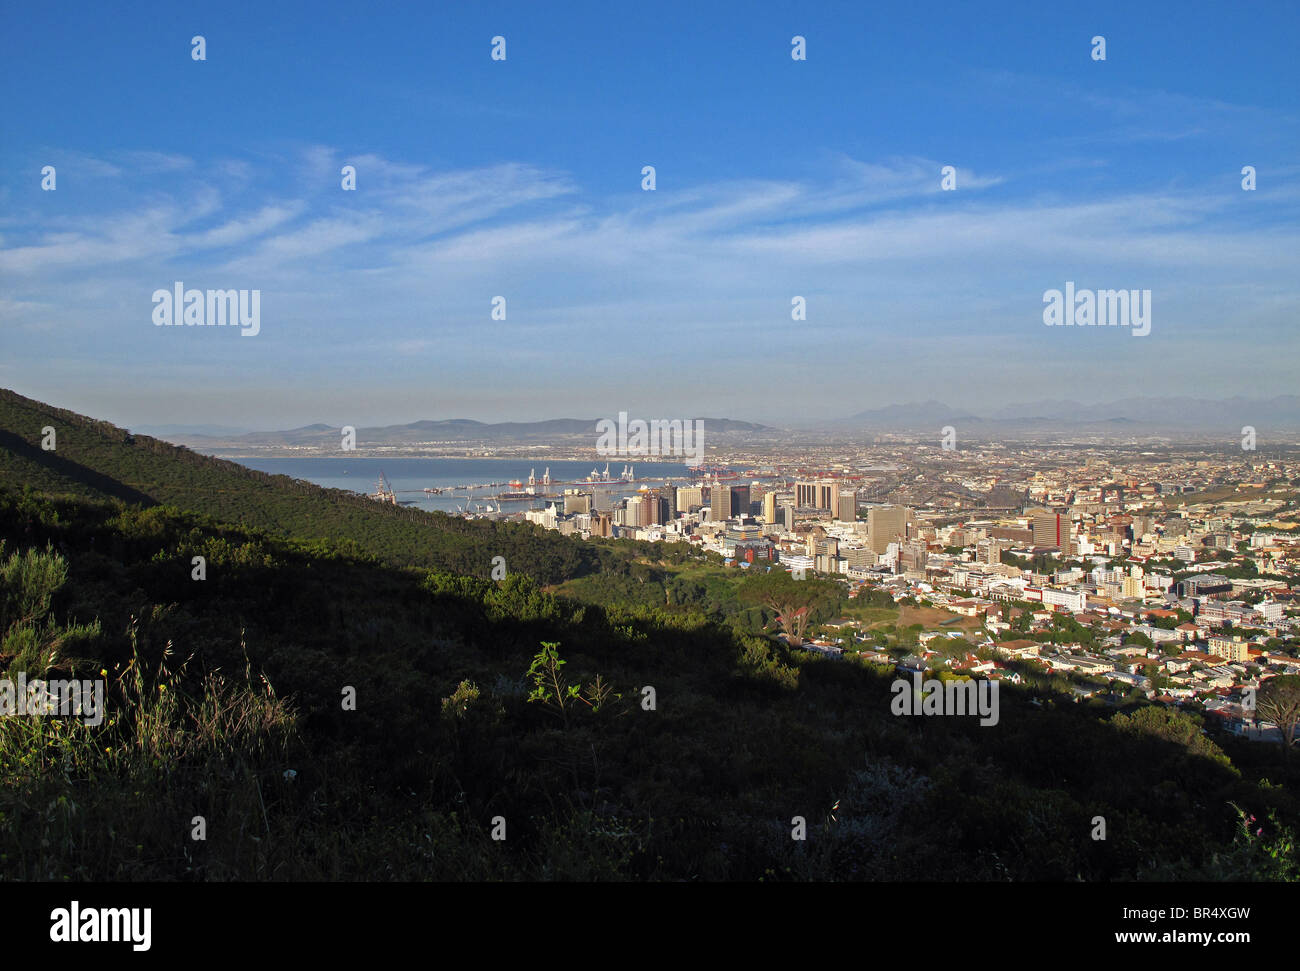 South Africa: Cape Town - Stock Image